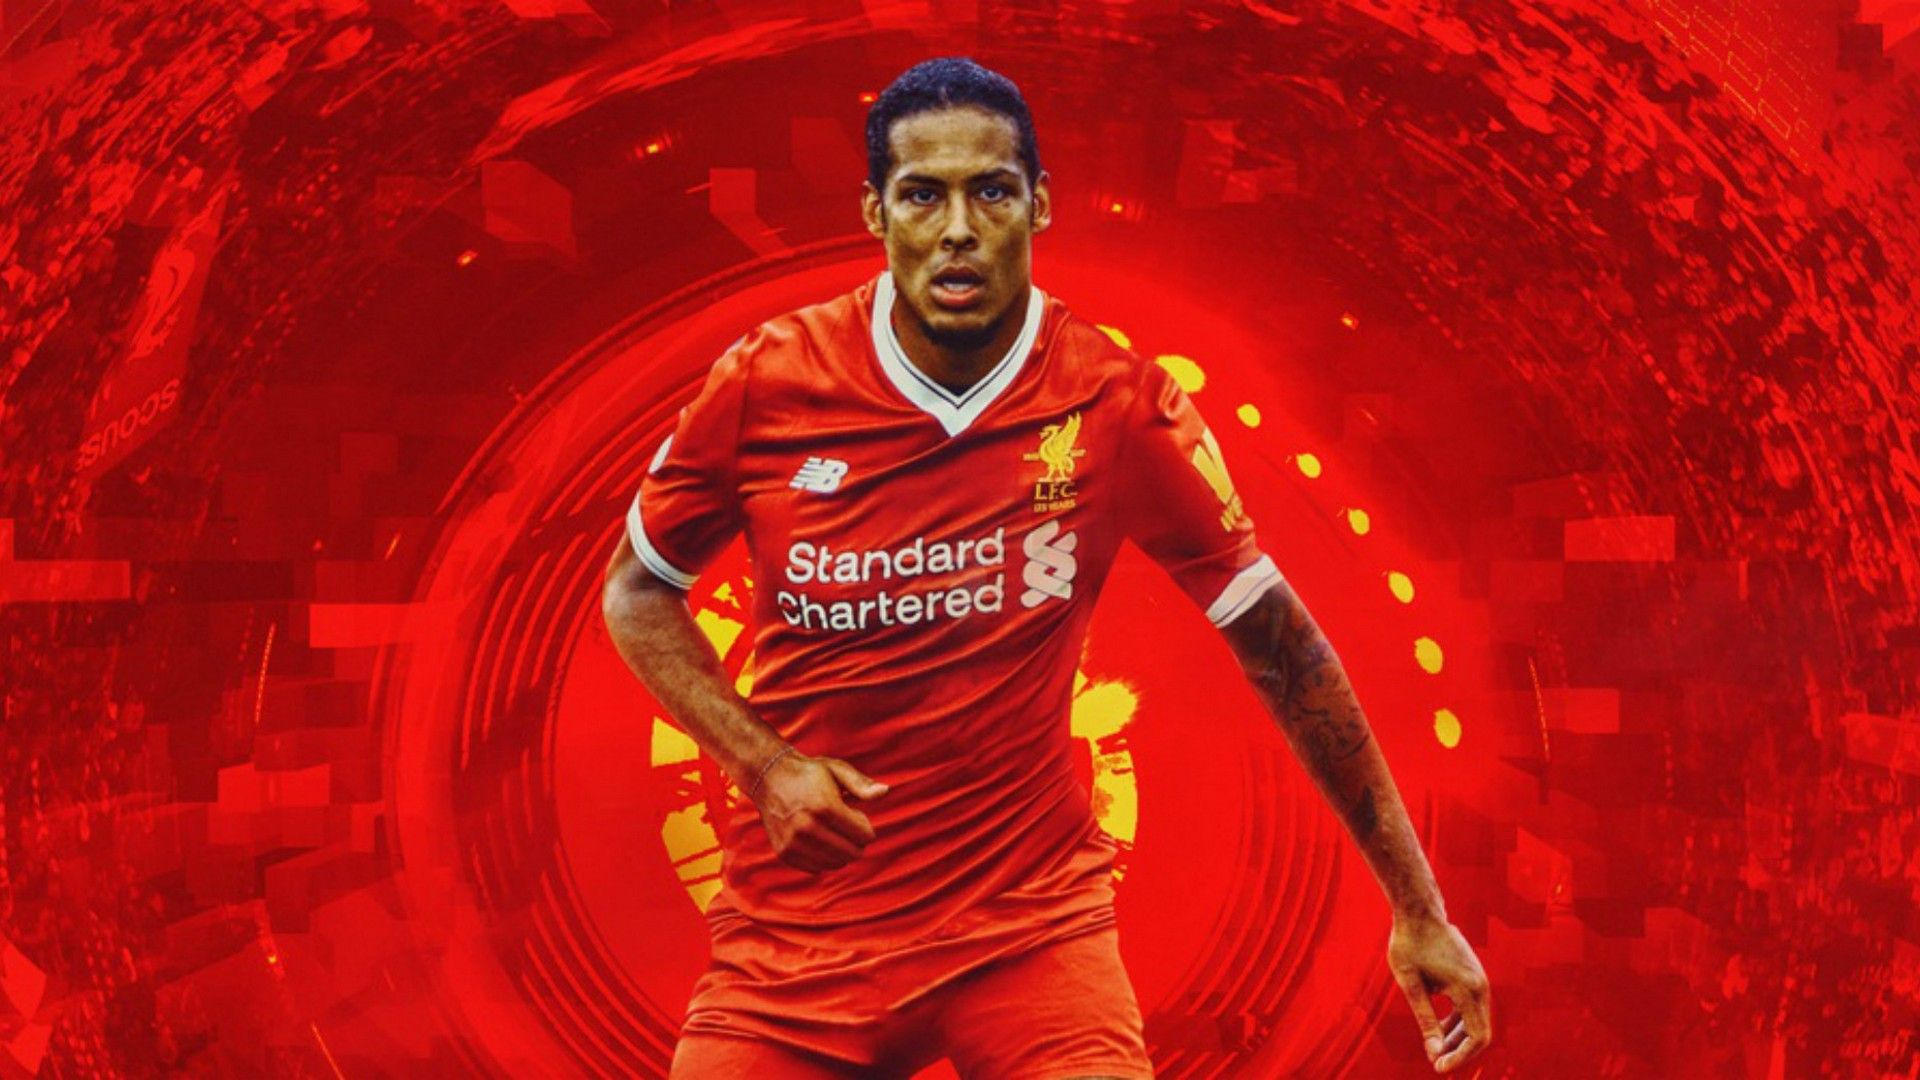 Virgil Van Dijk Liverpool Wallpaper Liverpool Wallpapers